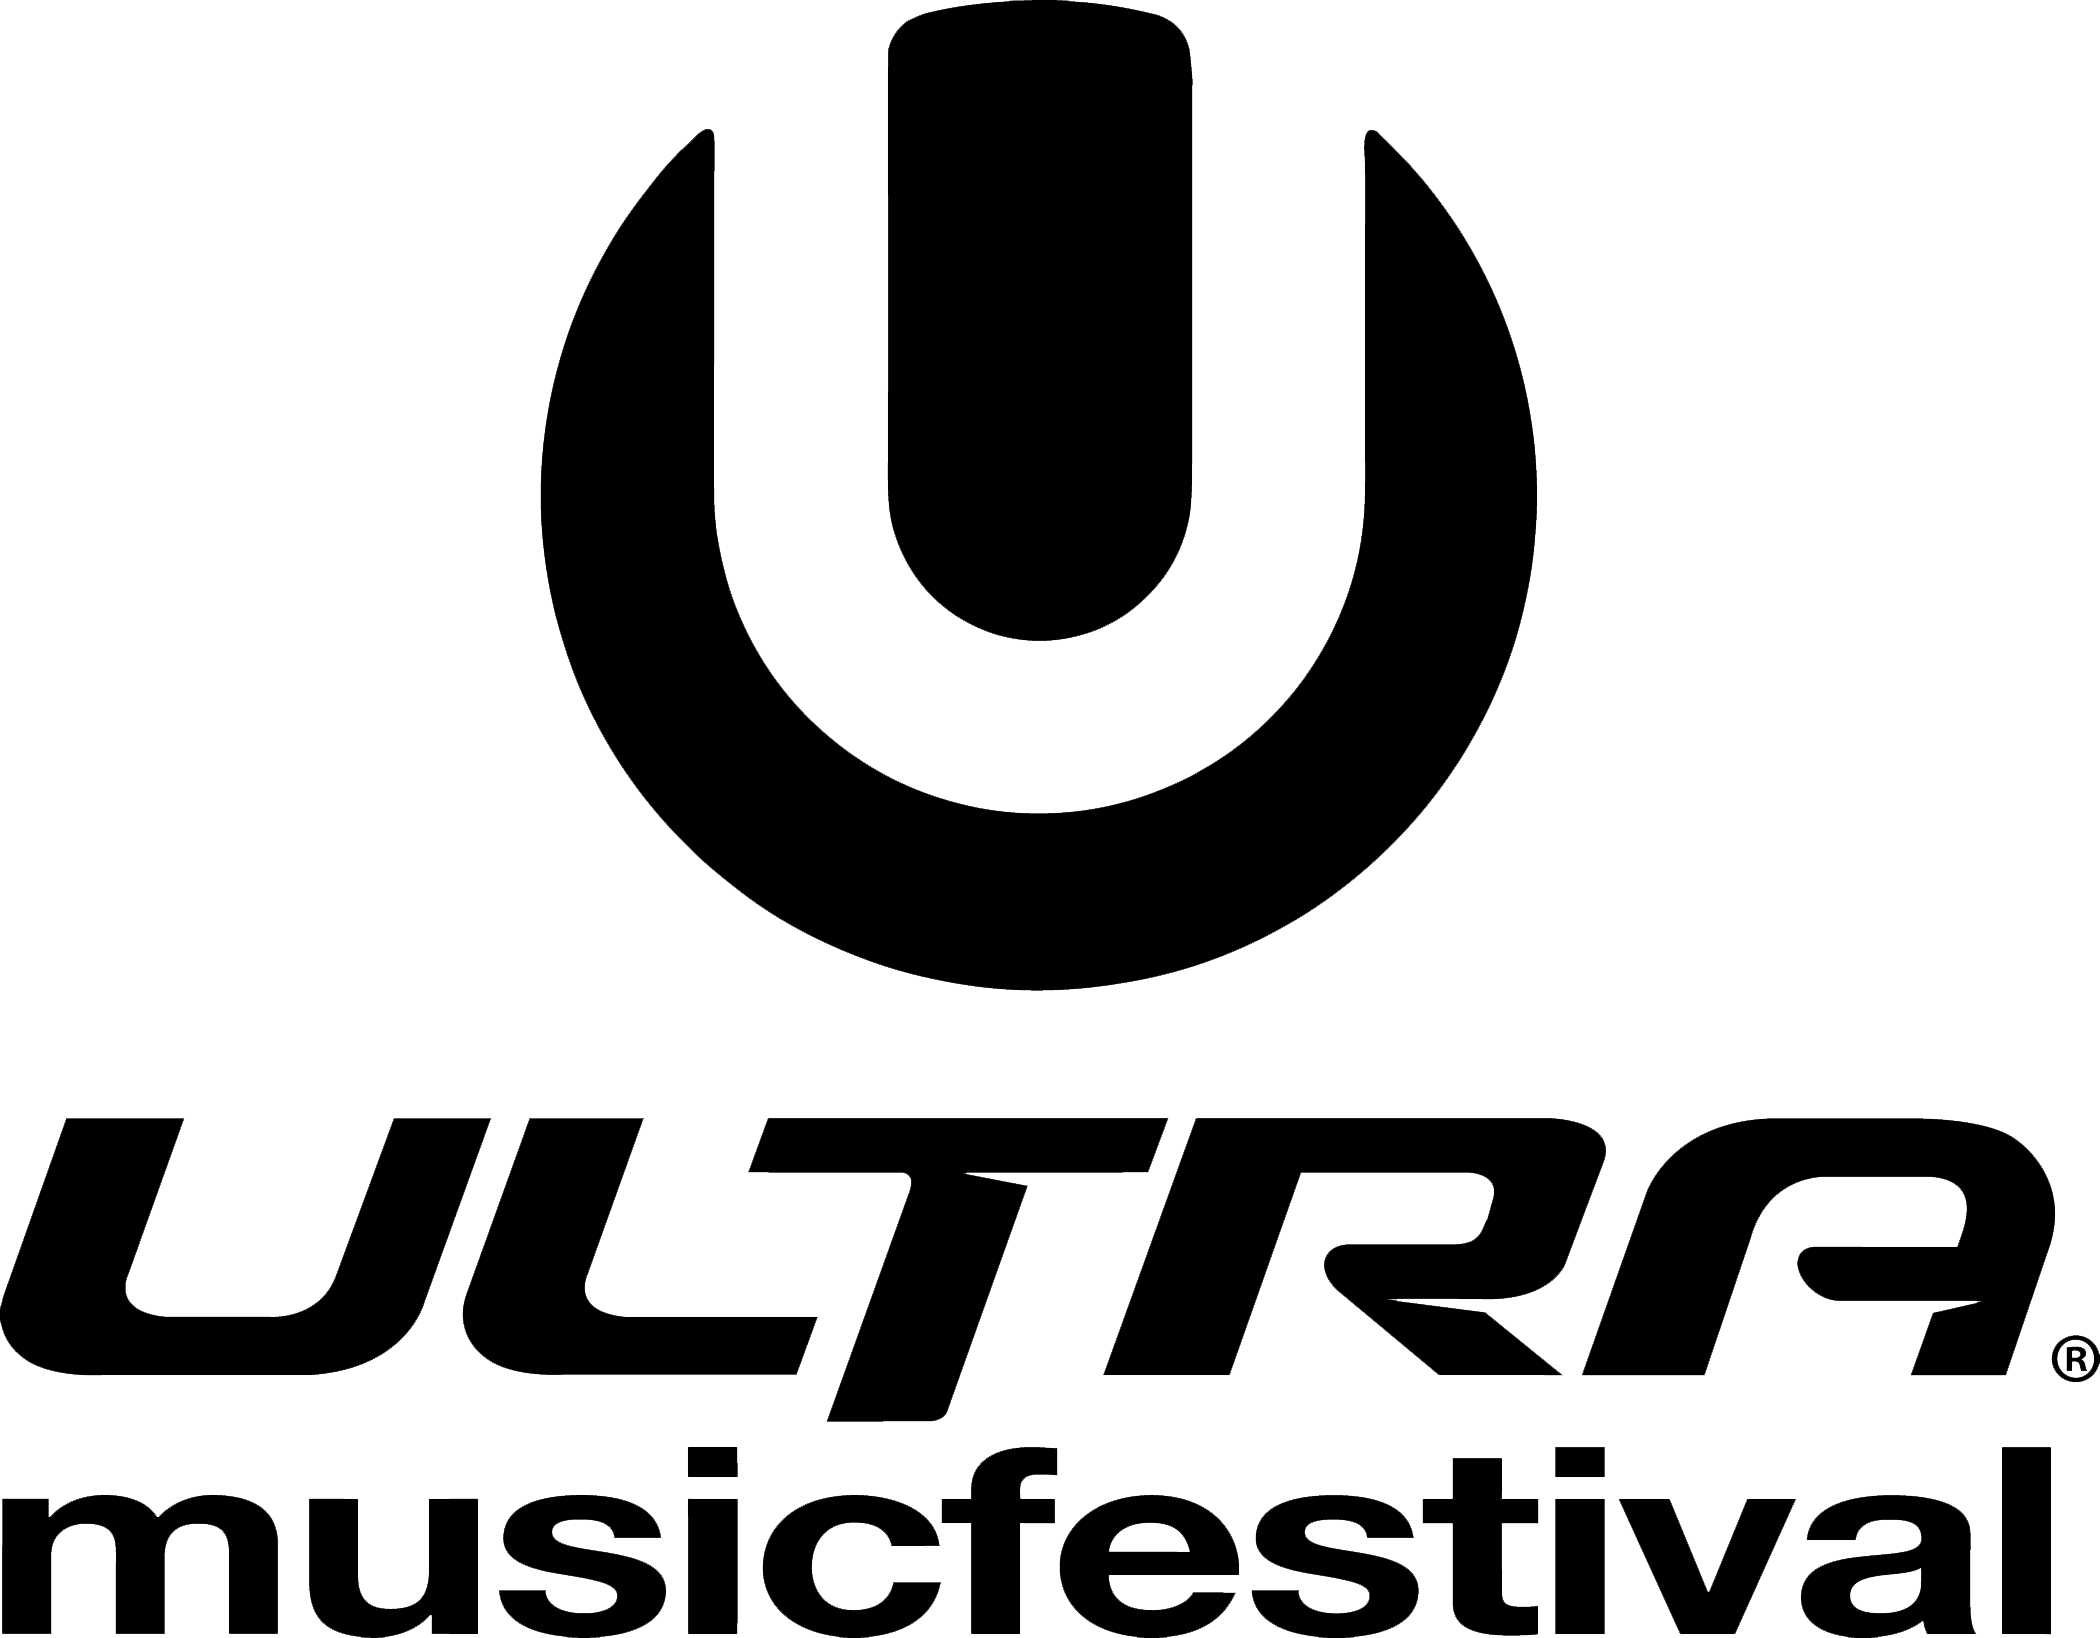 Ultra music festival logo png. Official after movie johanvisagie